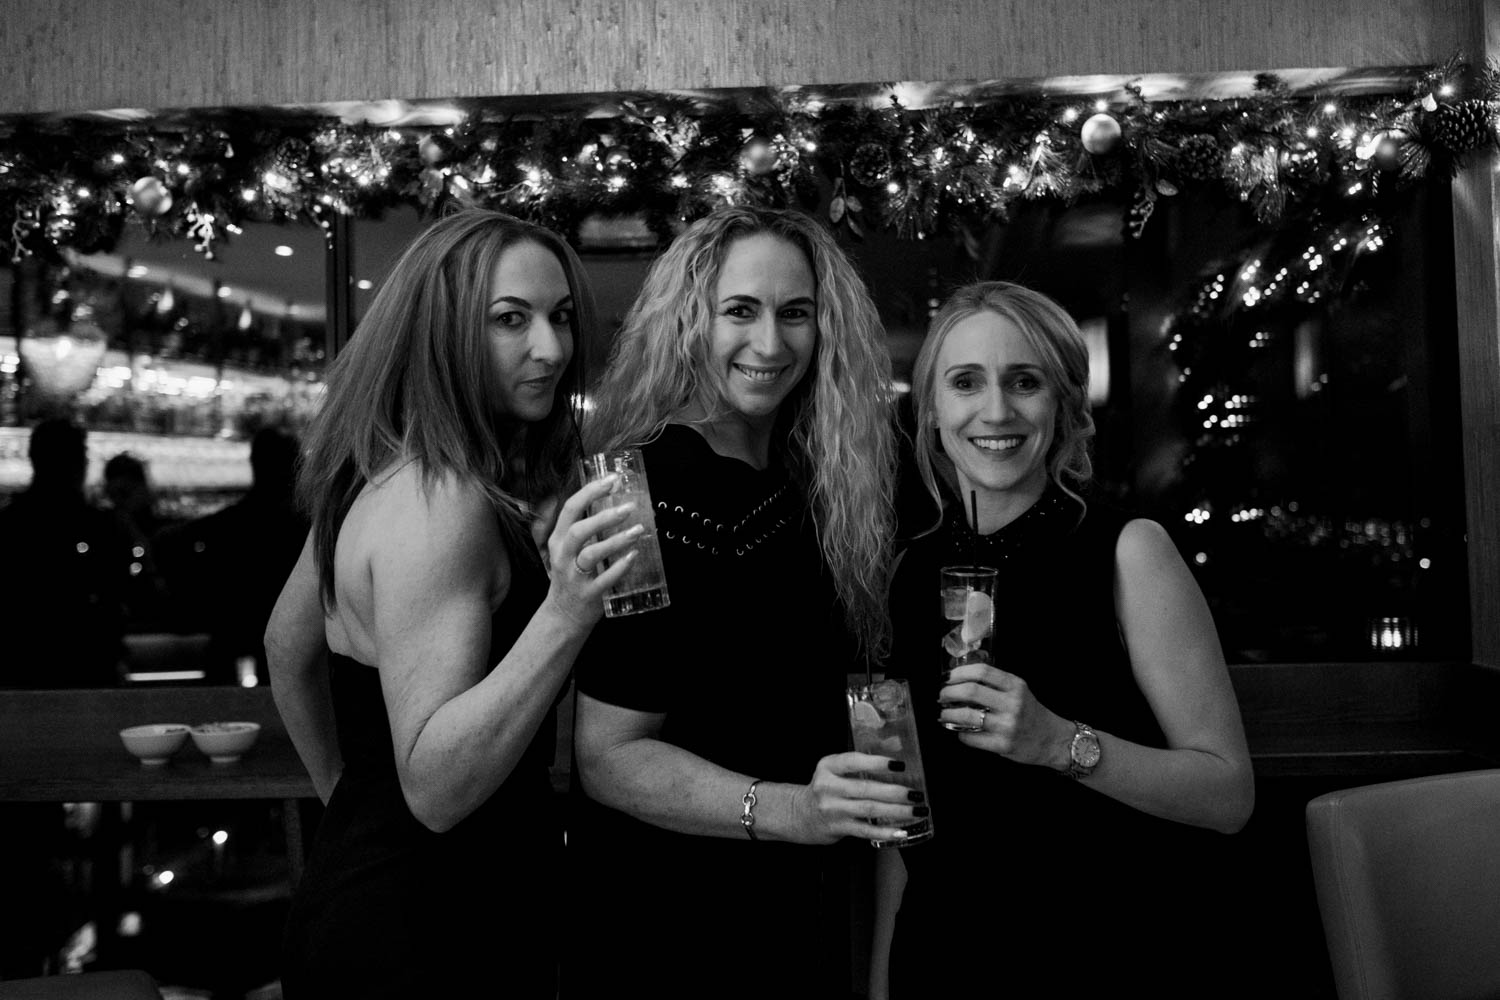 excell-xmas-party-2.jpg